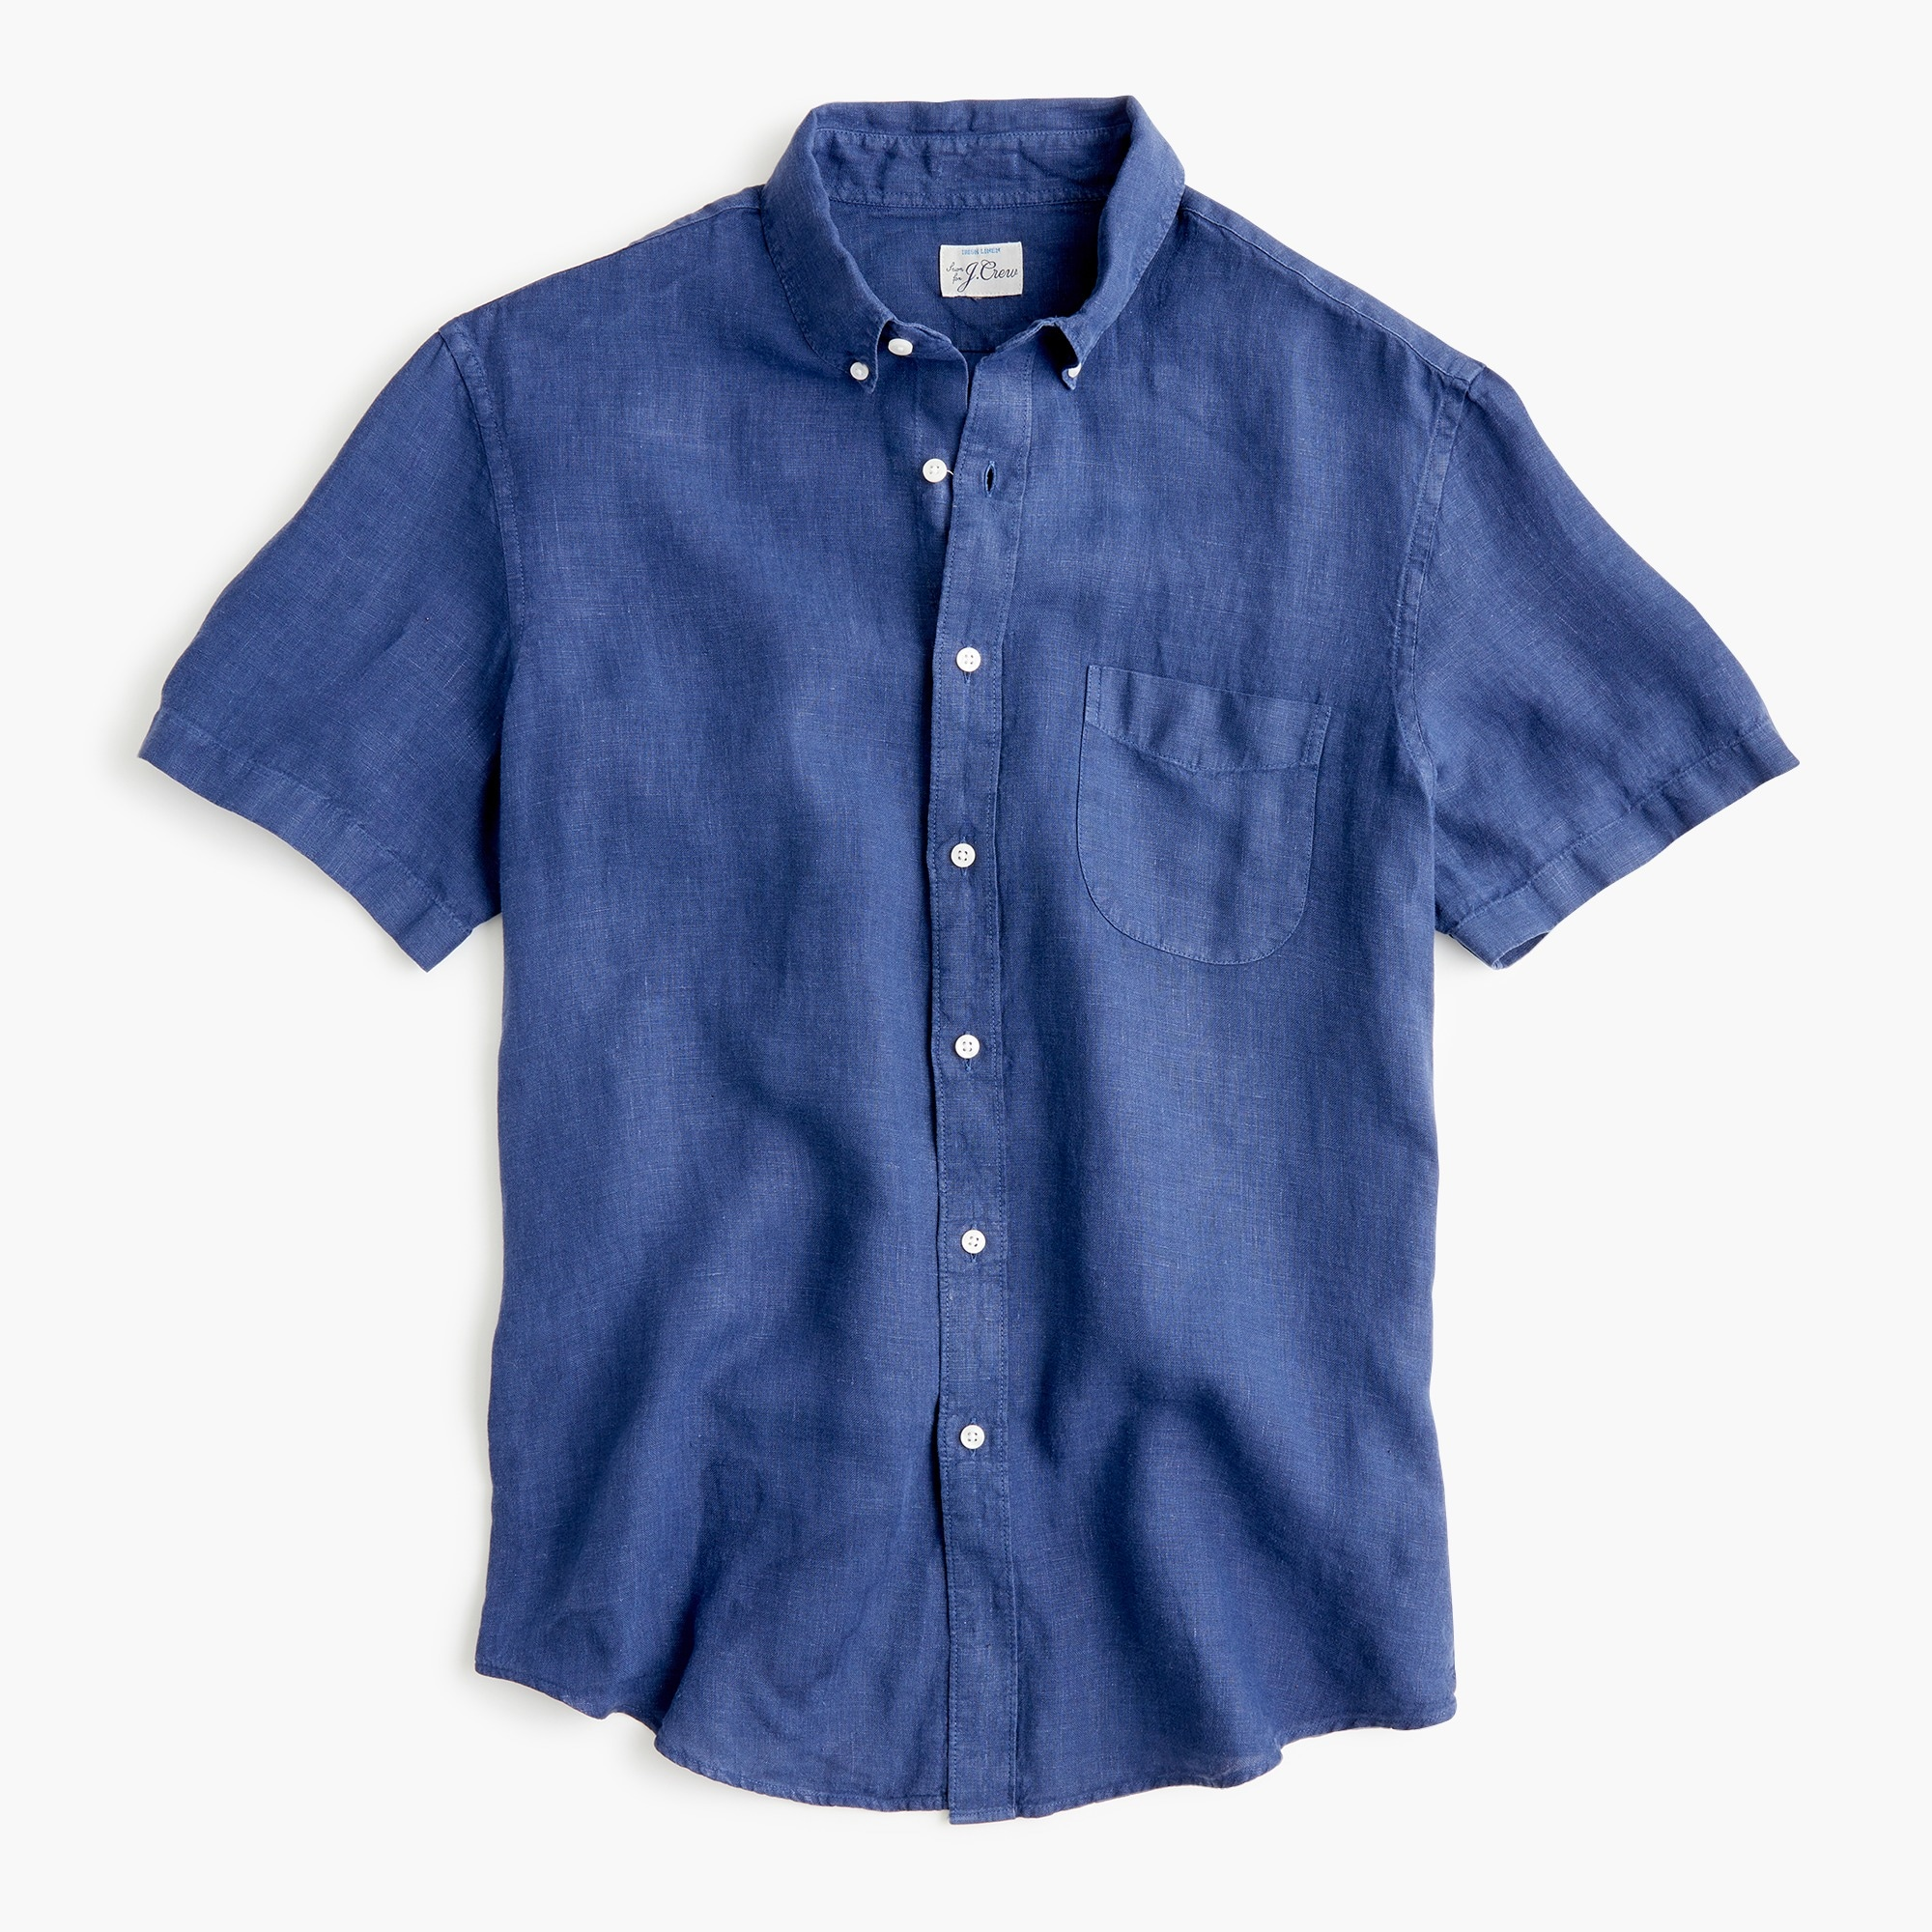 mens Short-sleeve garment-dyed shirt in Irish linen